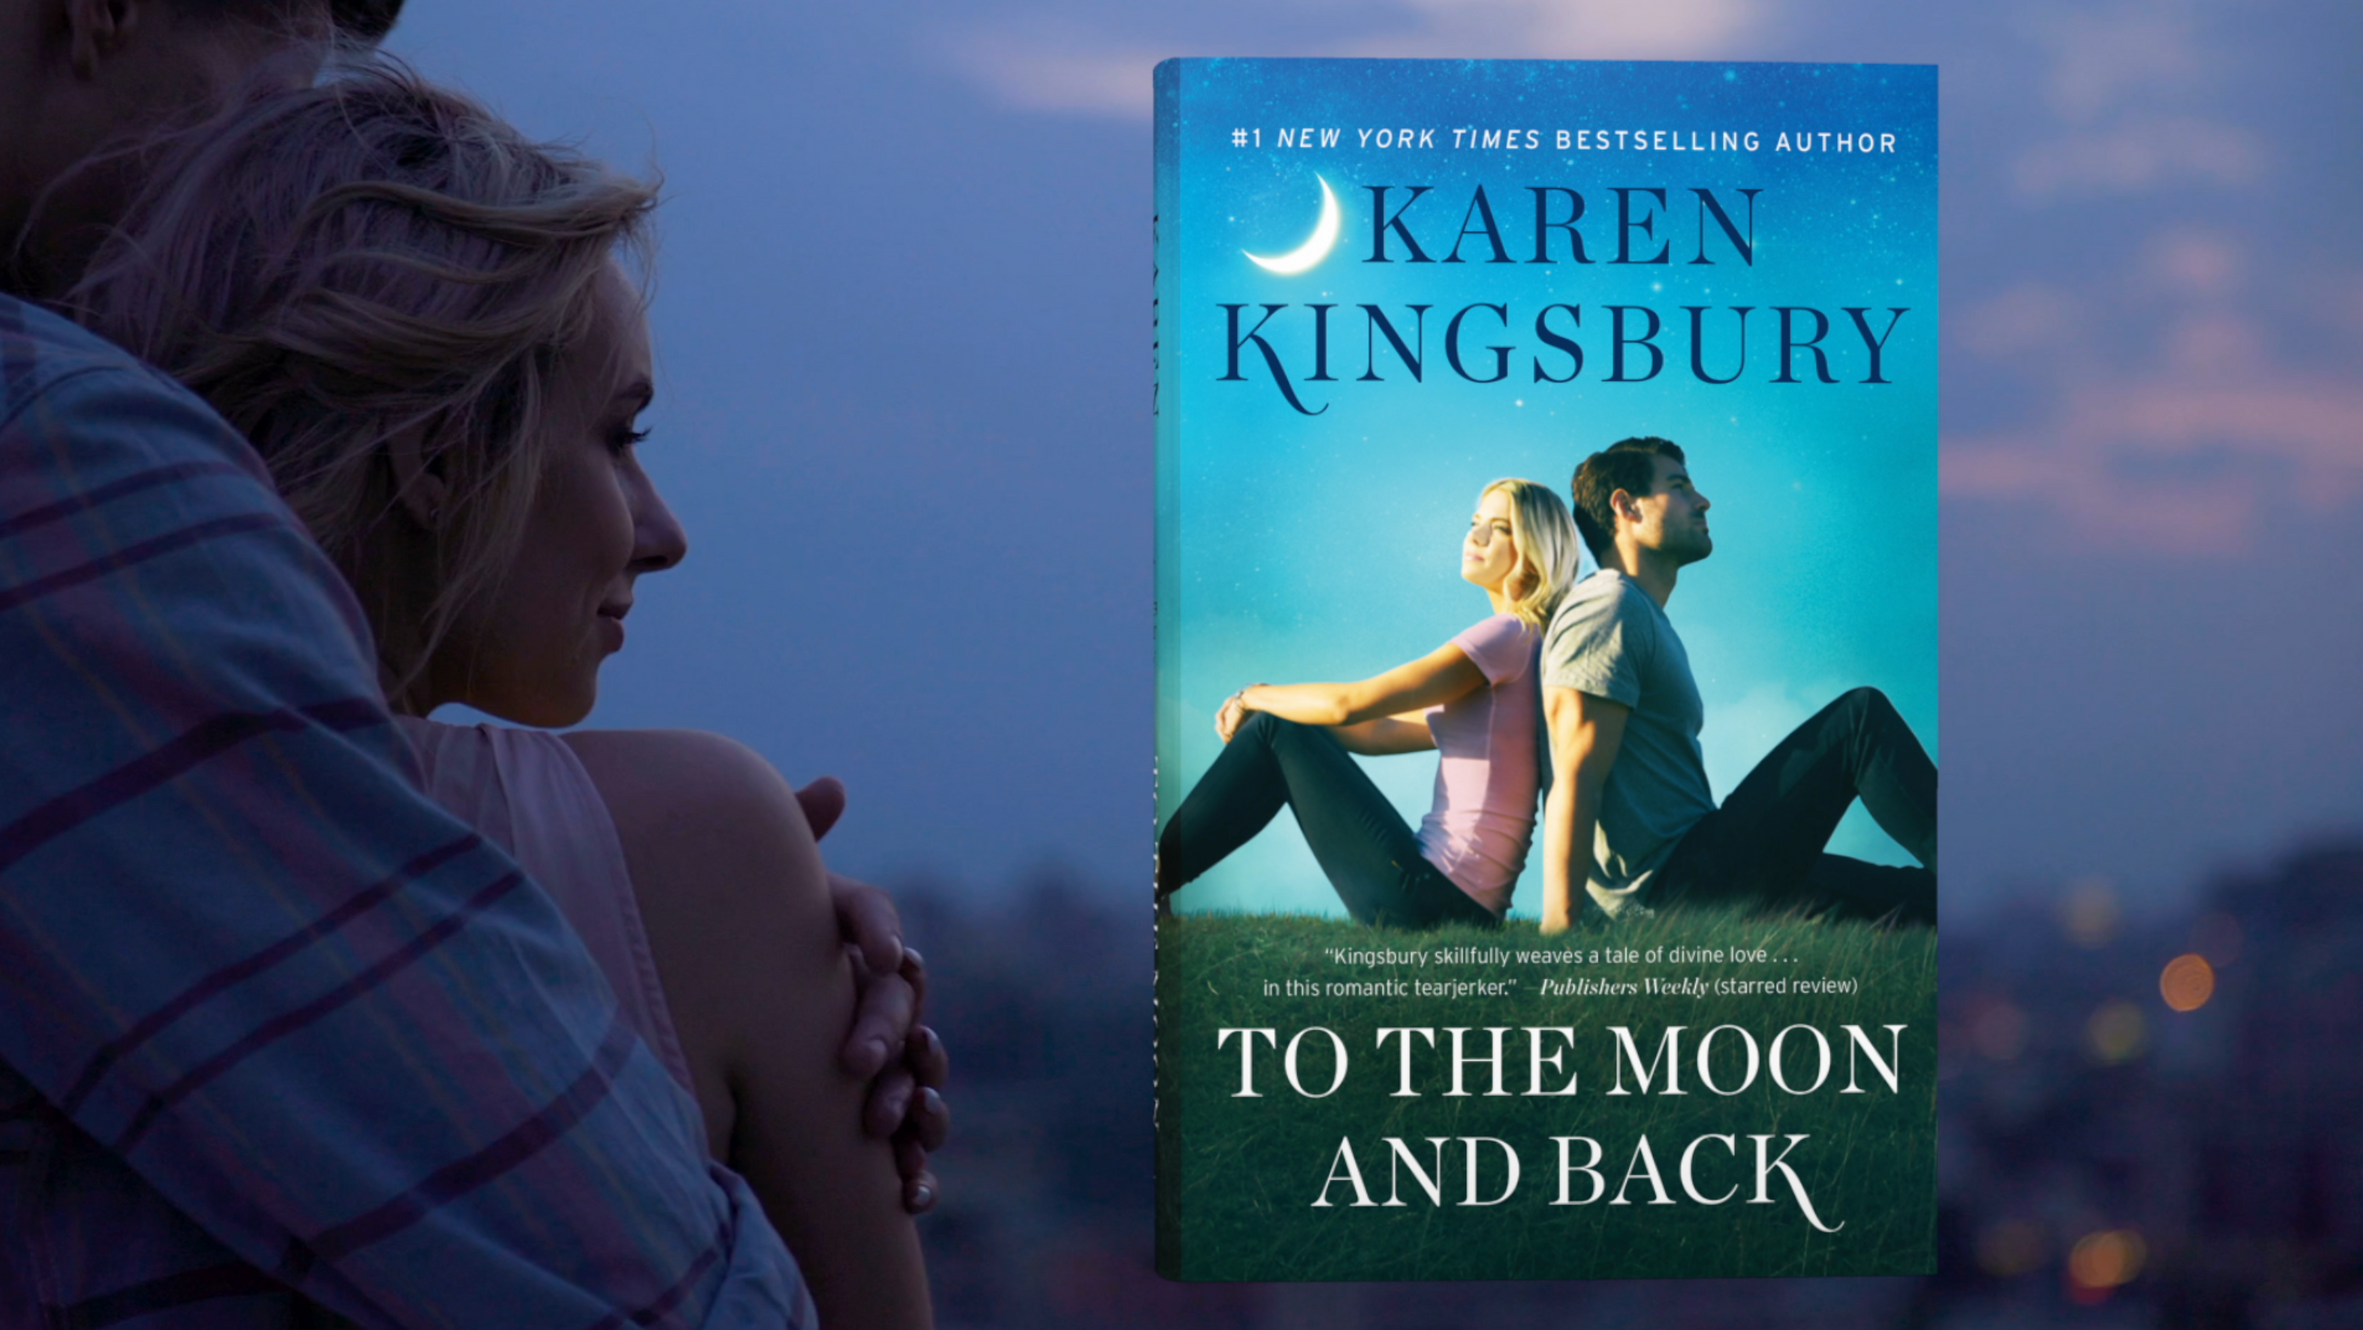 Karen Kingsbury | #1 New York Times Bestselling Author | My